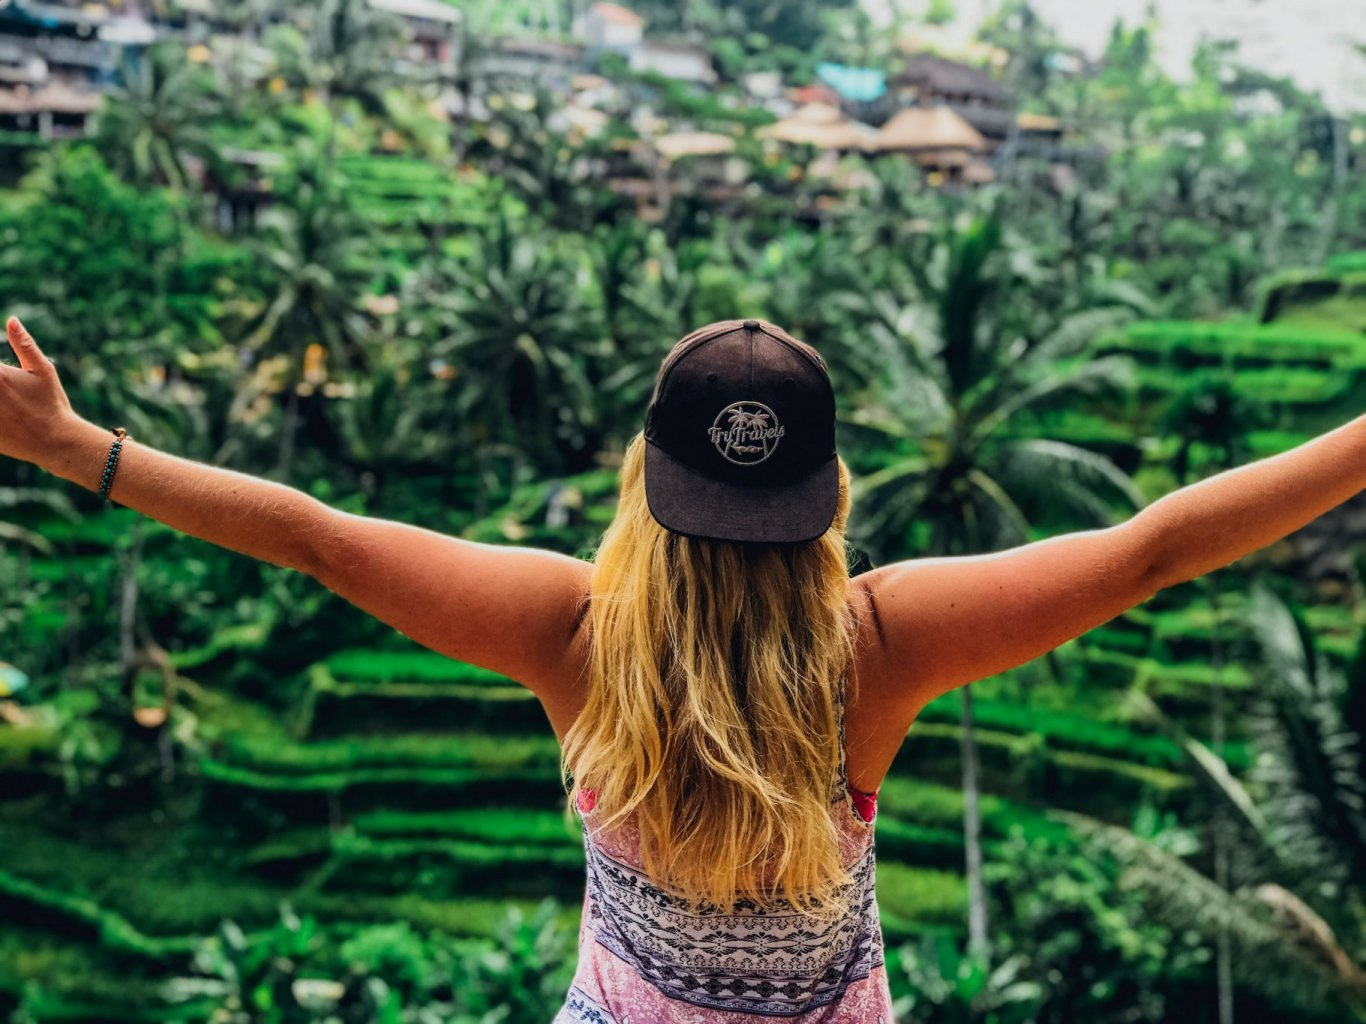 A girl posing with her arms out admiring the view of the emerald green rice terraces in Ubud, Bali, Indonesia